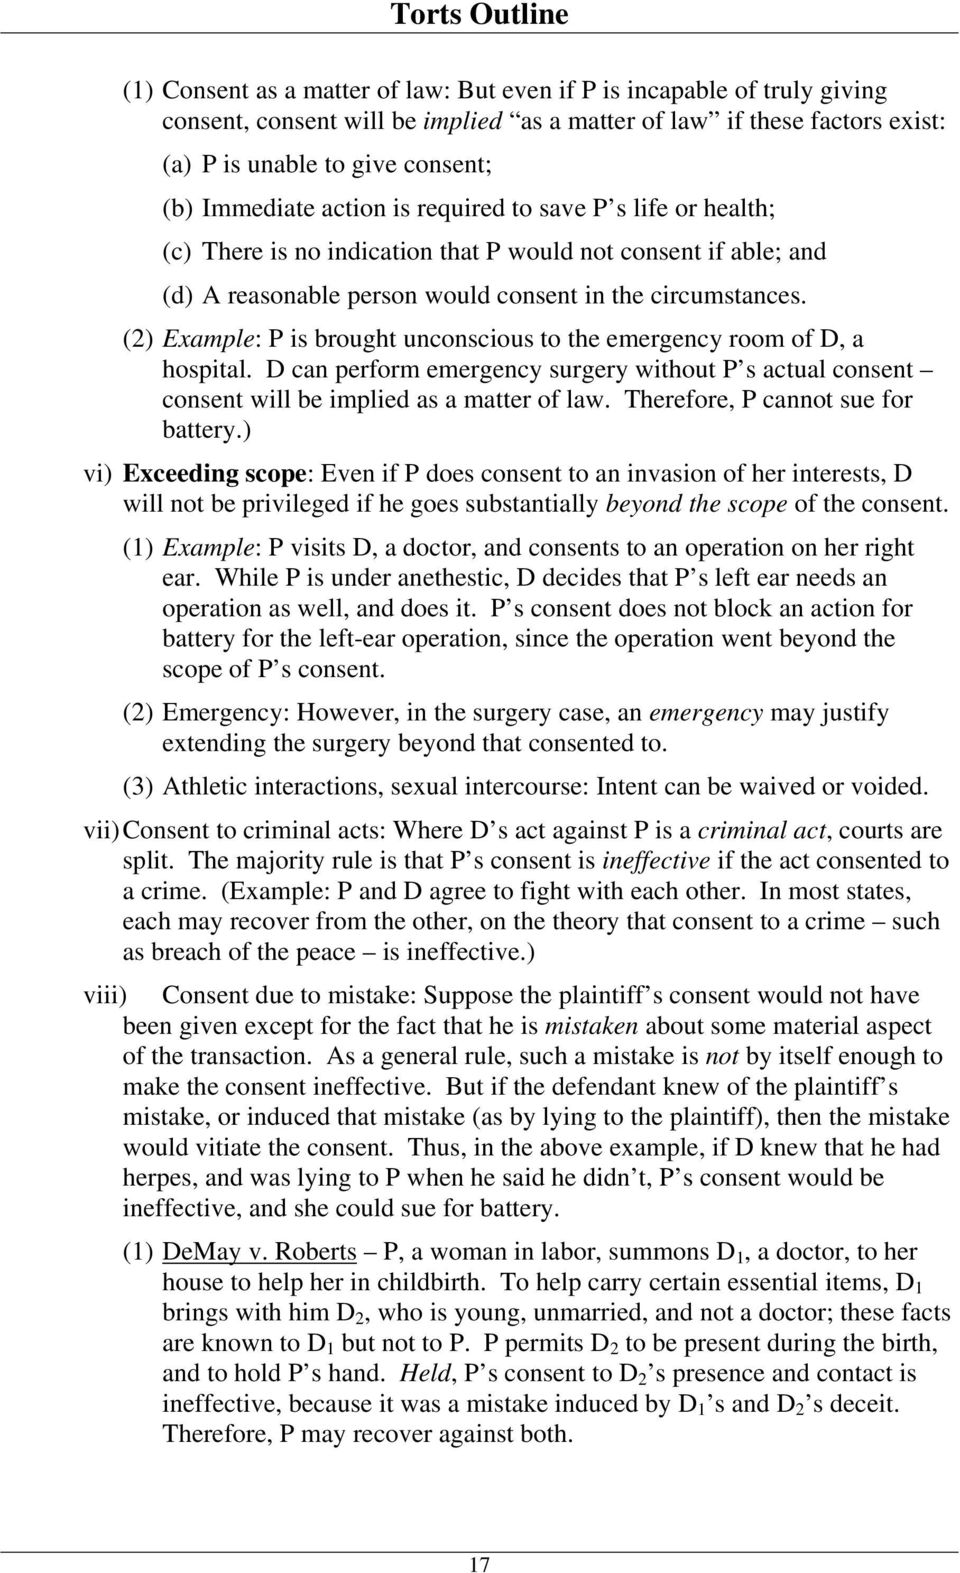 (2) Example: P is brought unconscious to the emergency room of D, a hospital. D can perform emergency surgery without P s actual consent consent will be implied as a matter of law.